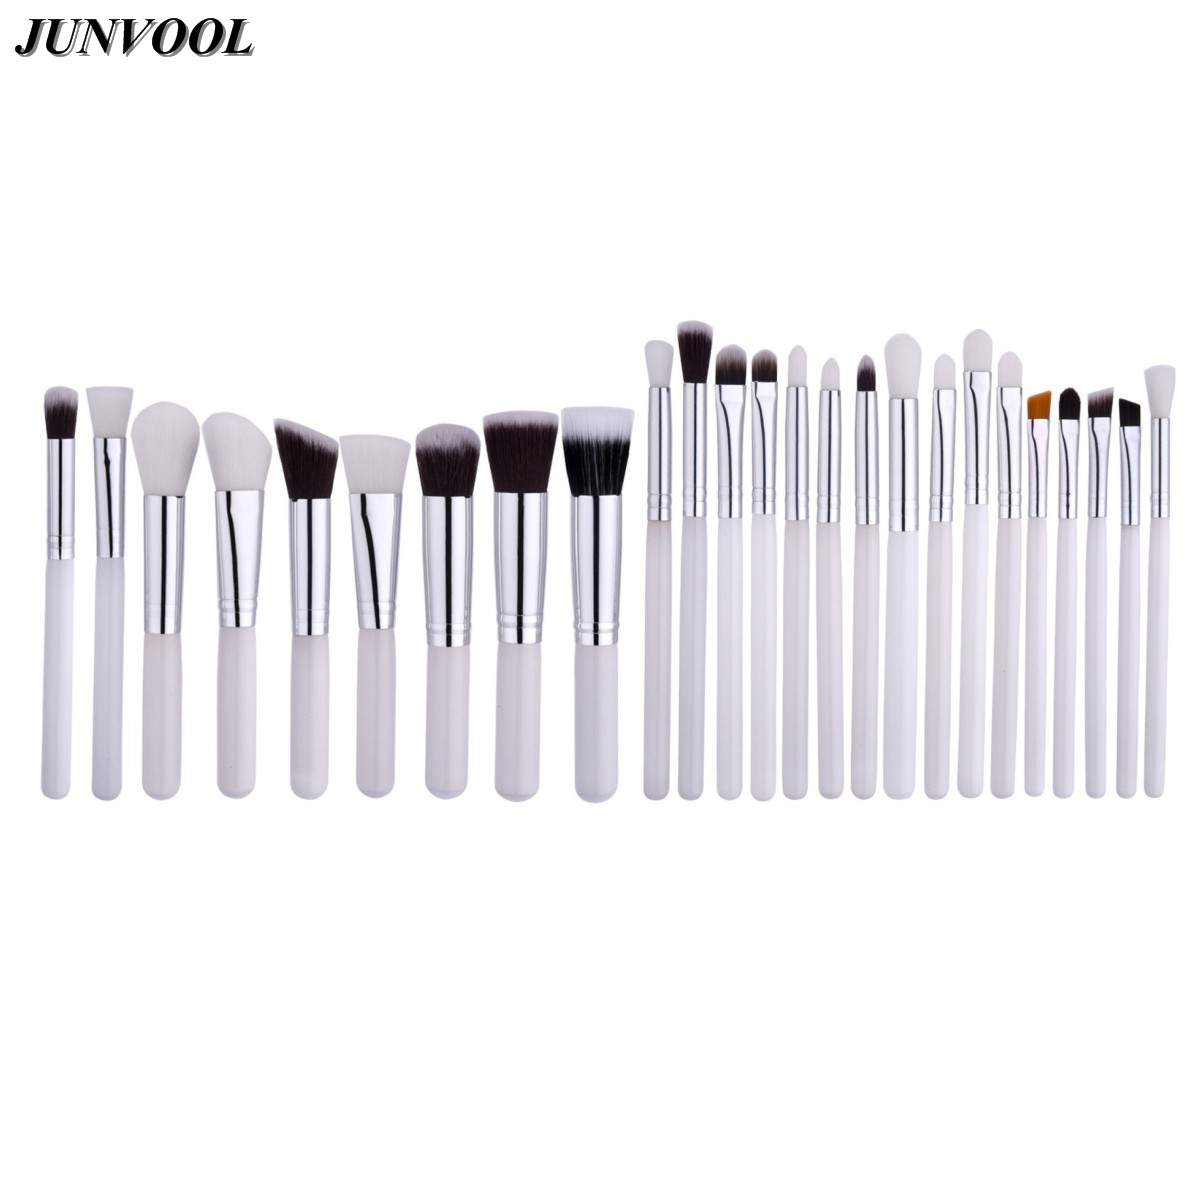 25Pcs Makeup Brushes Set Professional Make Up Tools Kit Powder Foundation Eyeshadow Eyeliner Cosmetic Beauty Blushes White&Black 25pcs makeup brushes set woodcolor nylon eye foundation powder eyeshadow eyeliner blush brush make up cosmetic tools kit bag